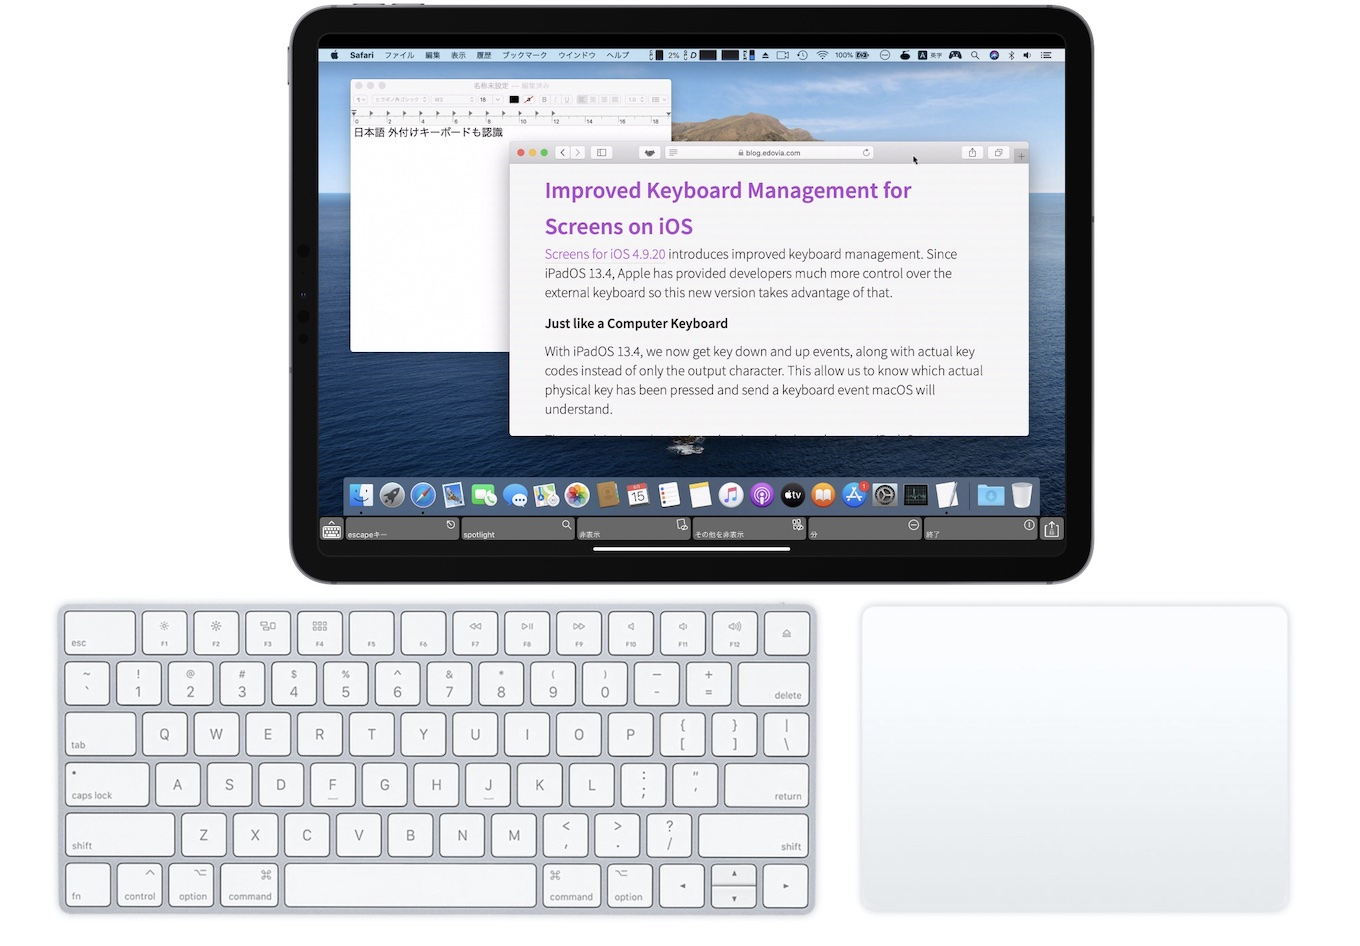 Screens for iOS improved keyboard iPad Pro